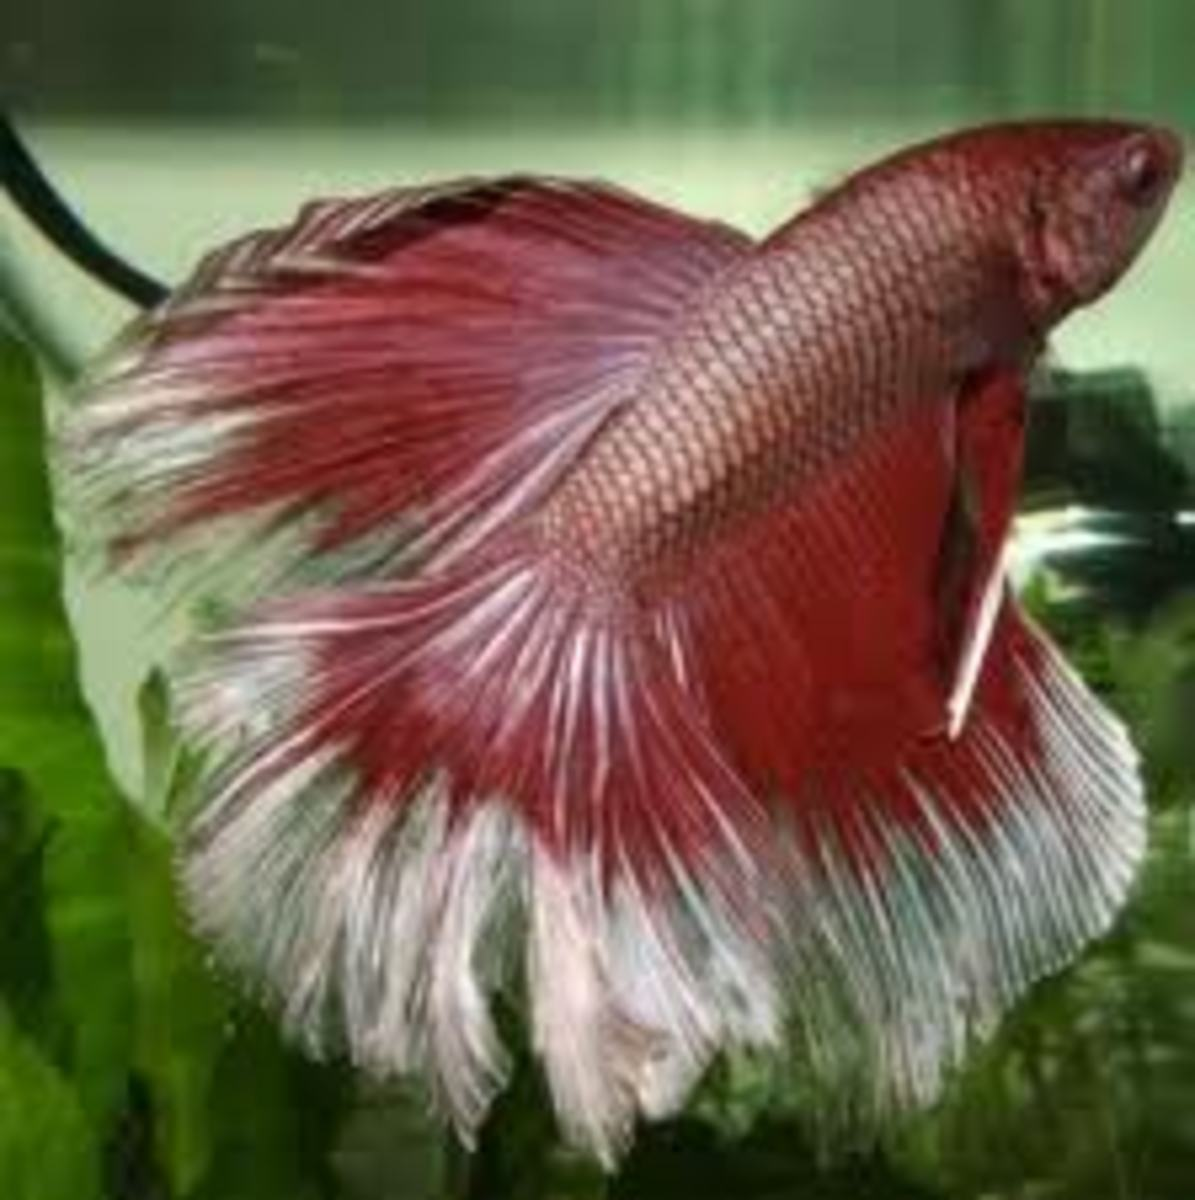 Male and Female Betta fish